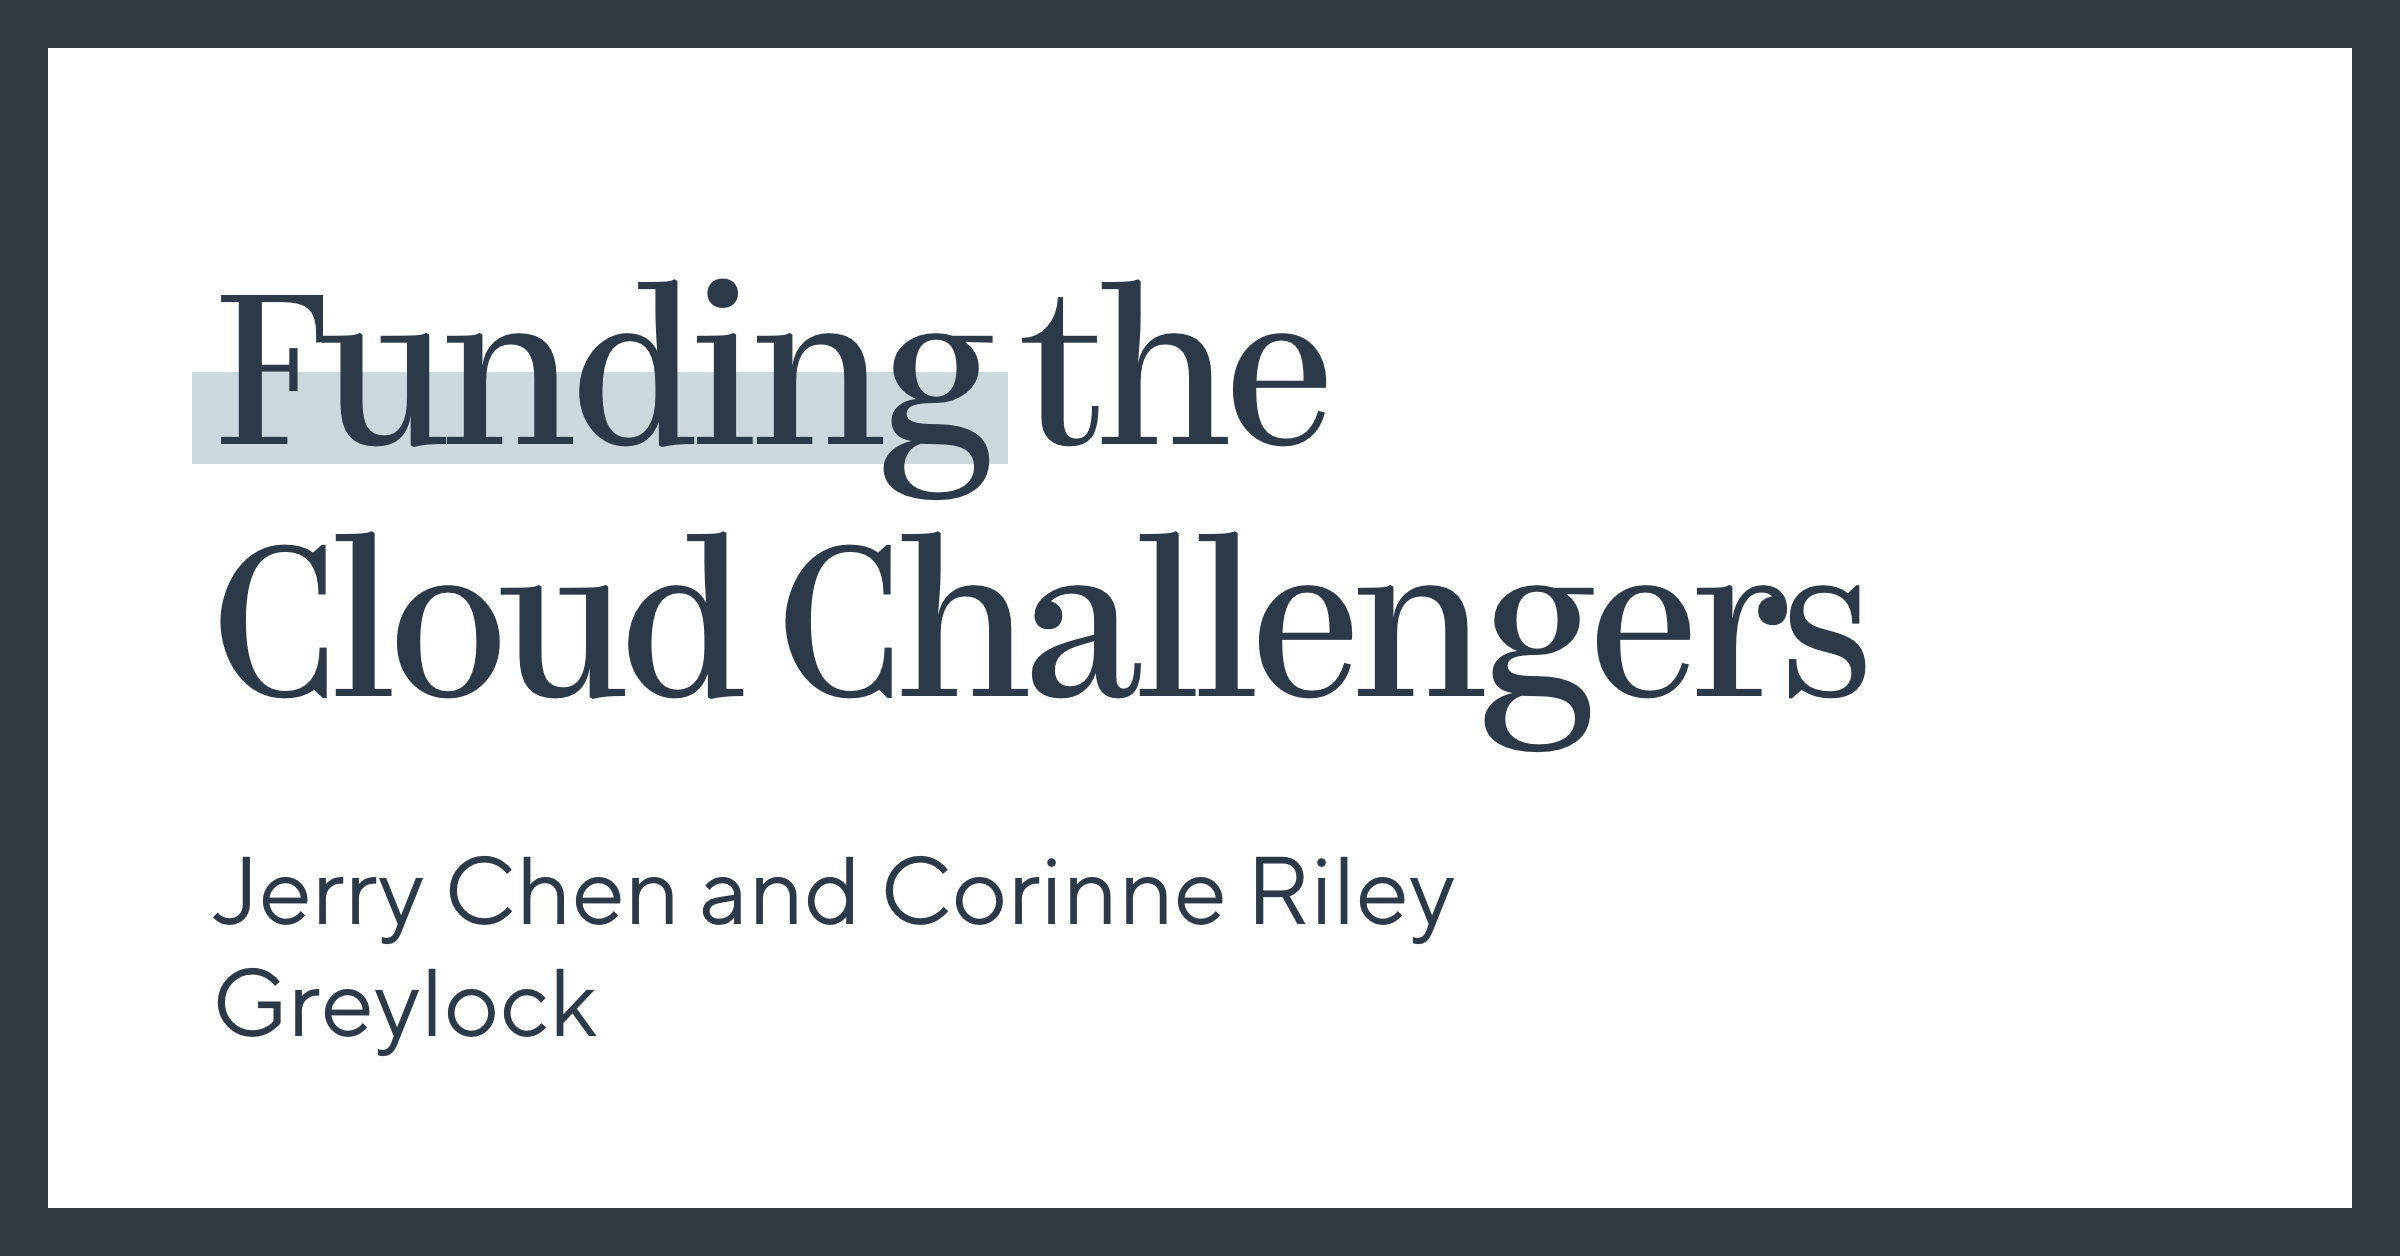 Funding The Cloud Challengers